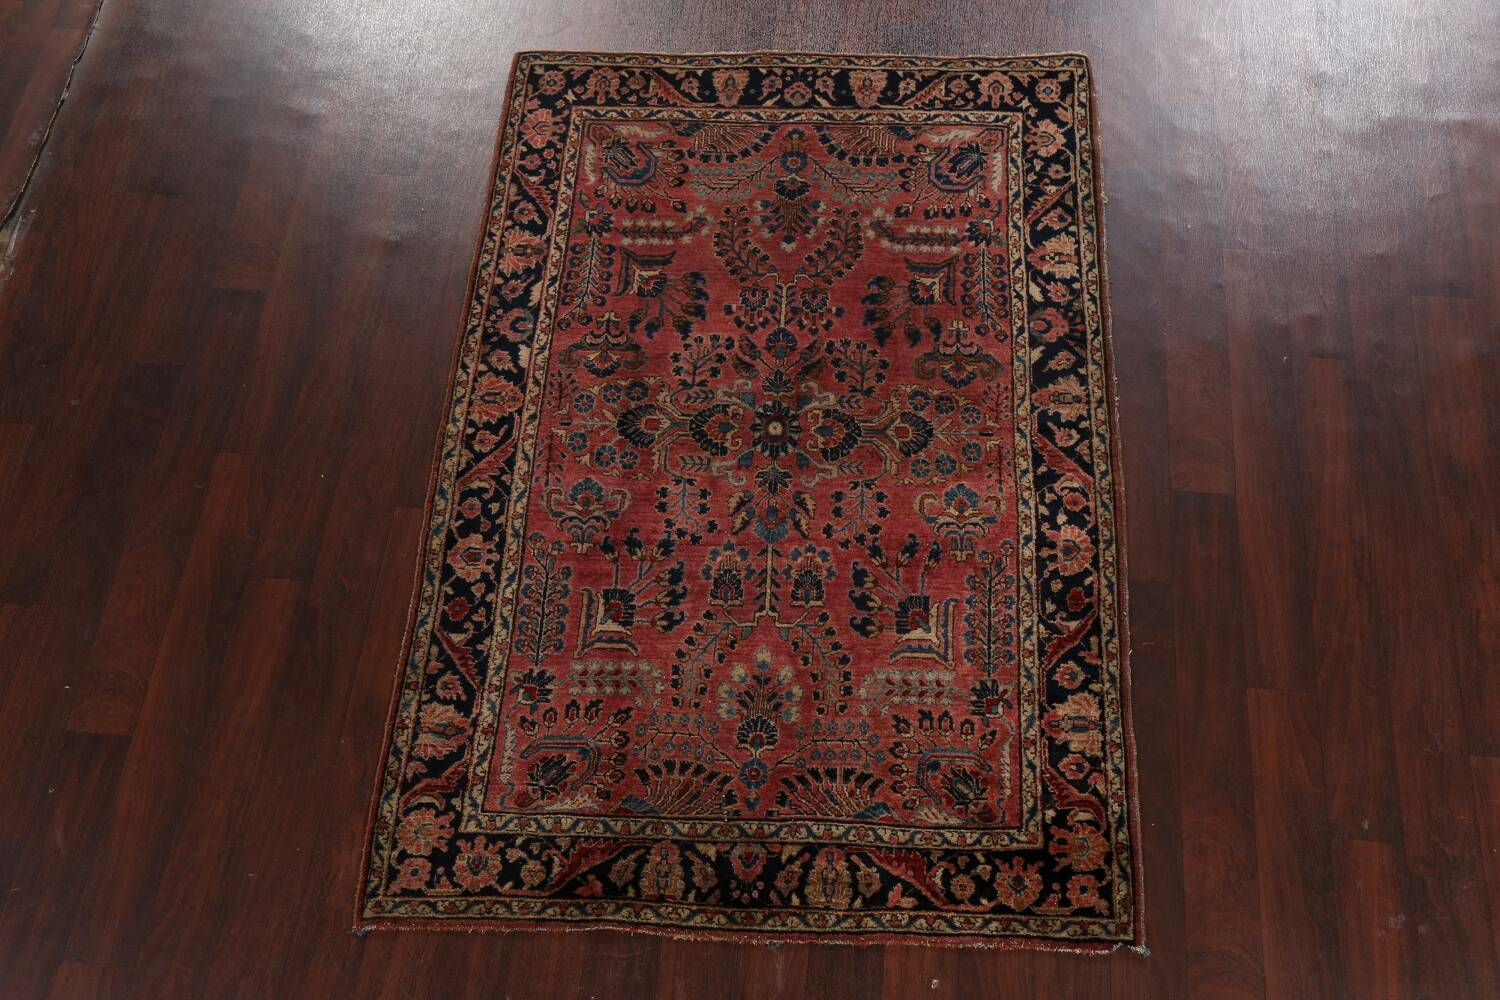 Antique Vegetable Dye Floral Sarouk Persian Area Rug 4x7 image 2